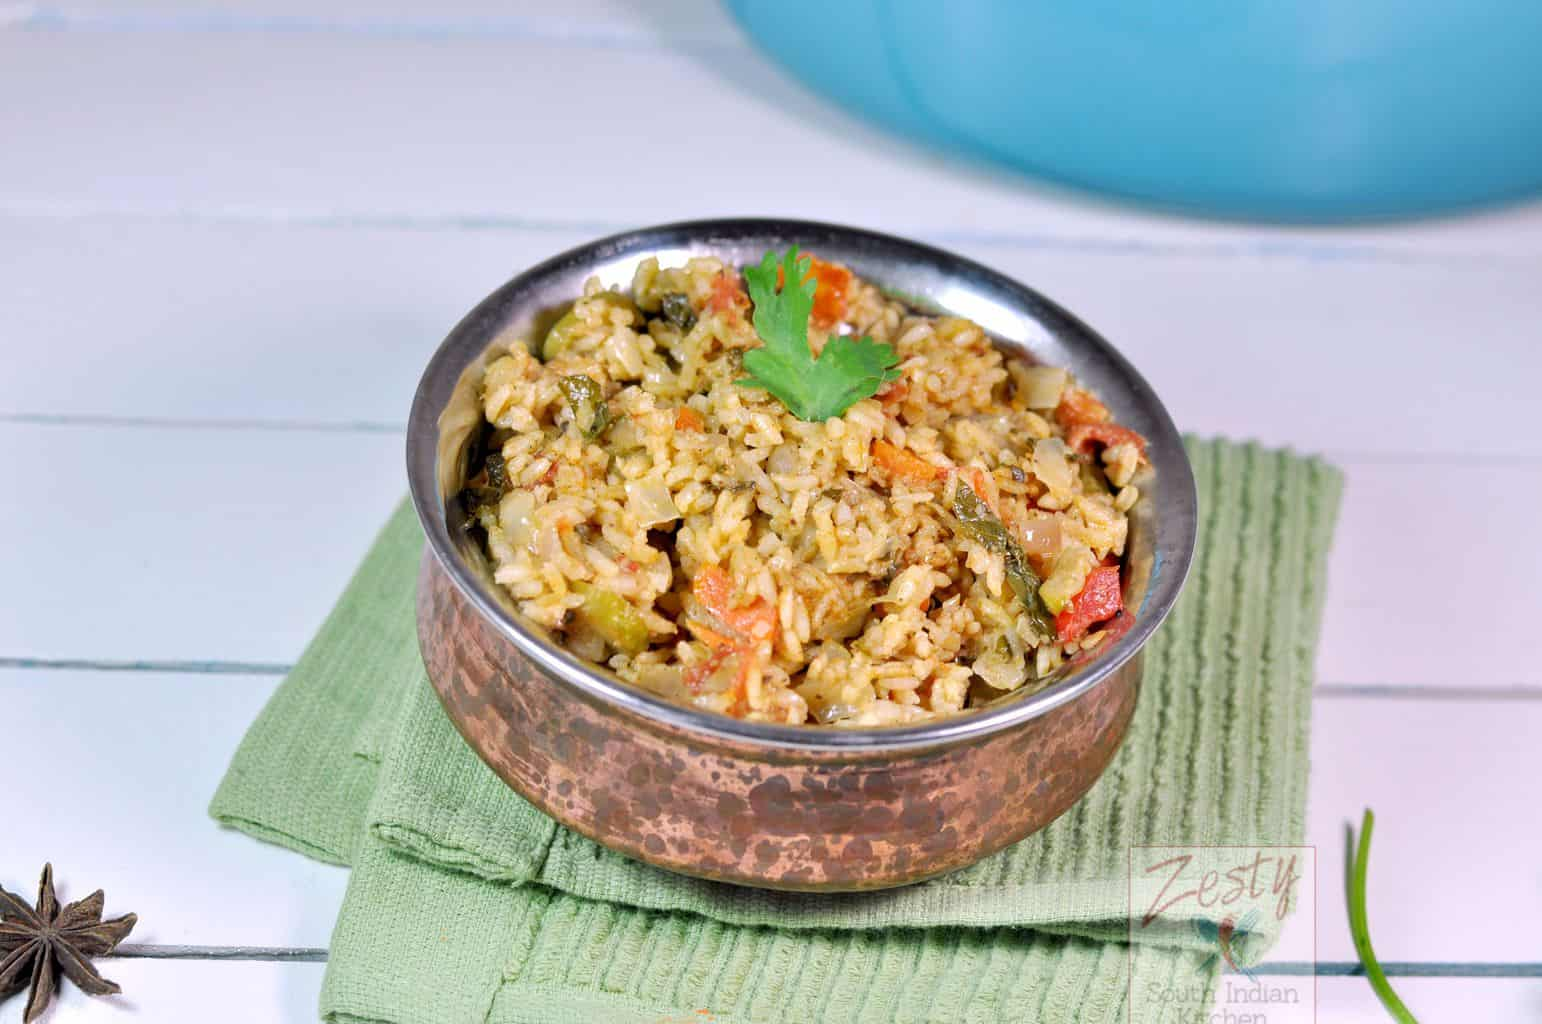 Kaikari Biryani Vegetable Biryani Zesty South Indian Kitchen